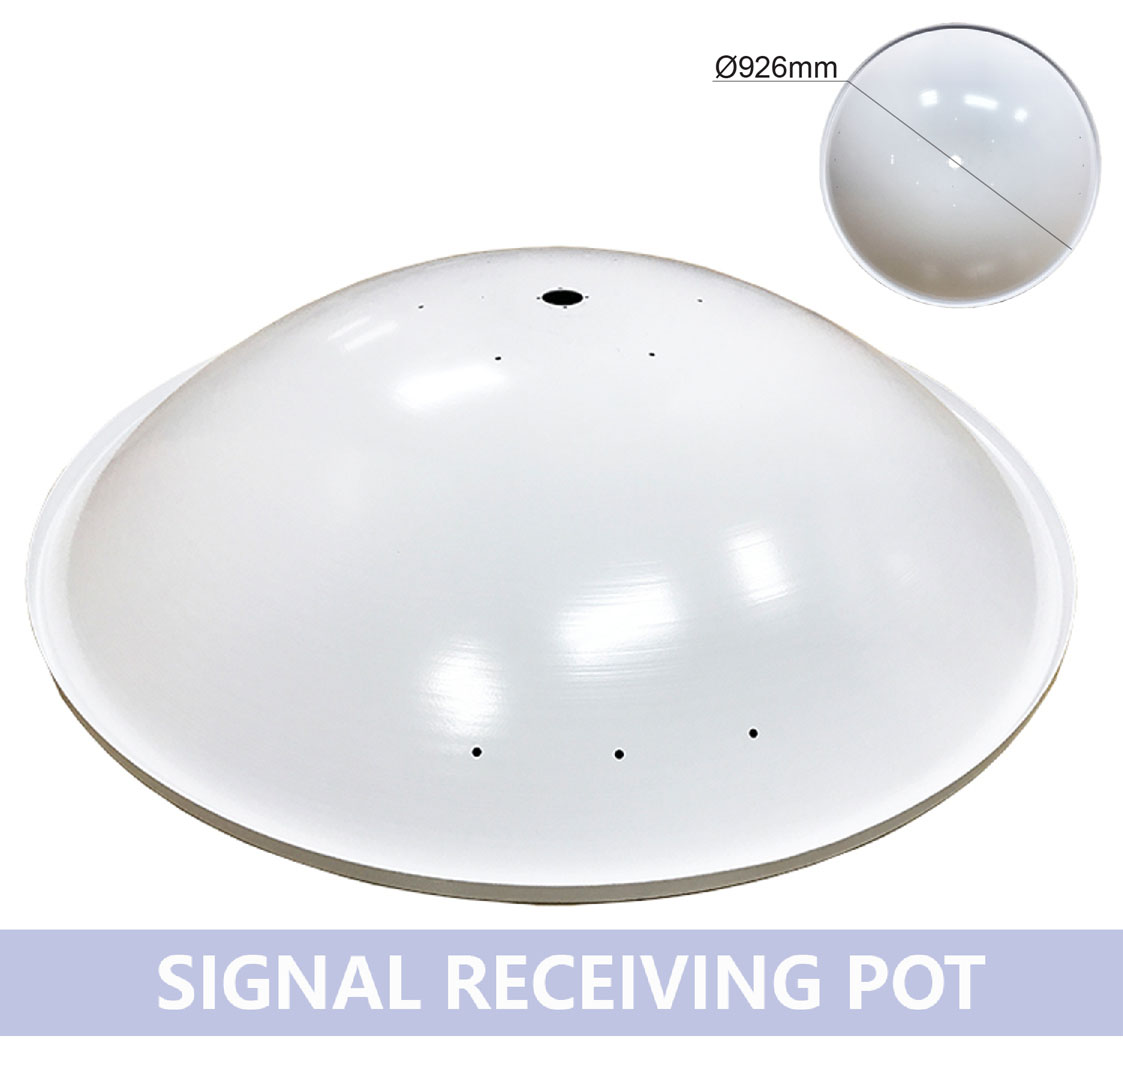 信号接收器SIGNAL RECEIVING POT